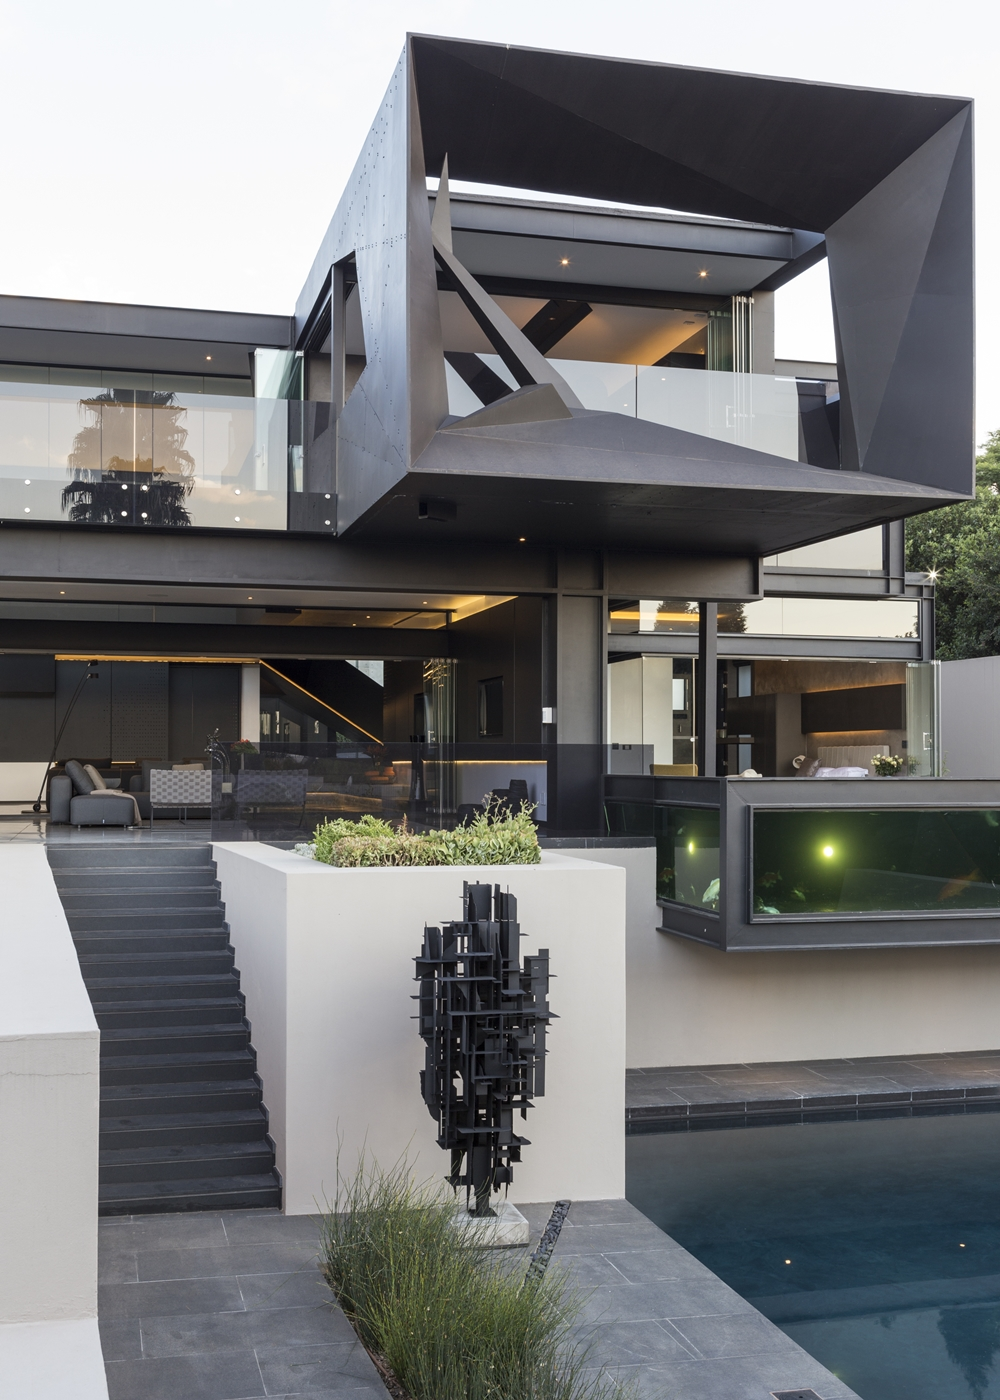 Best houses in the world amazing kloof road house for Maison ultra minimaliste